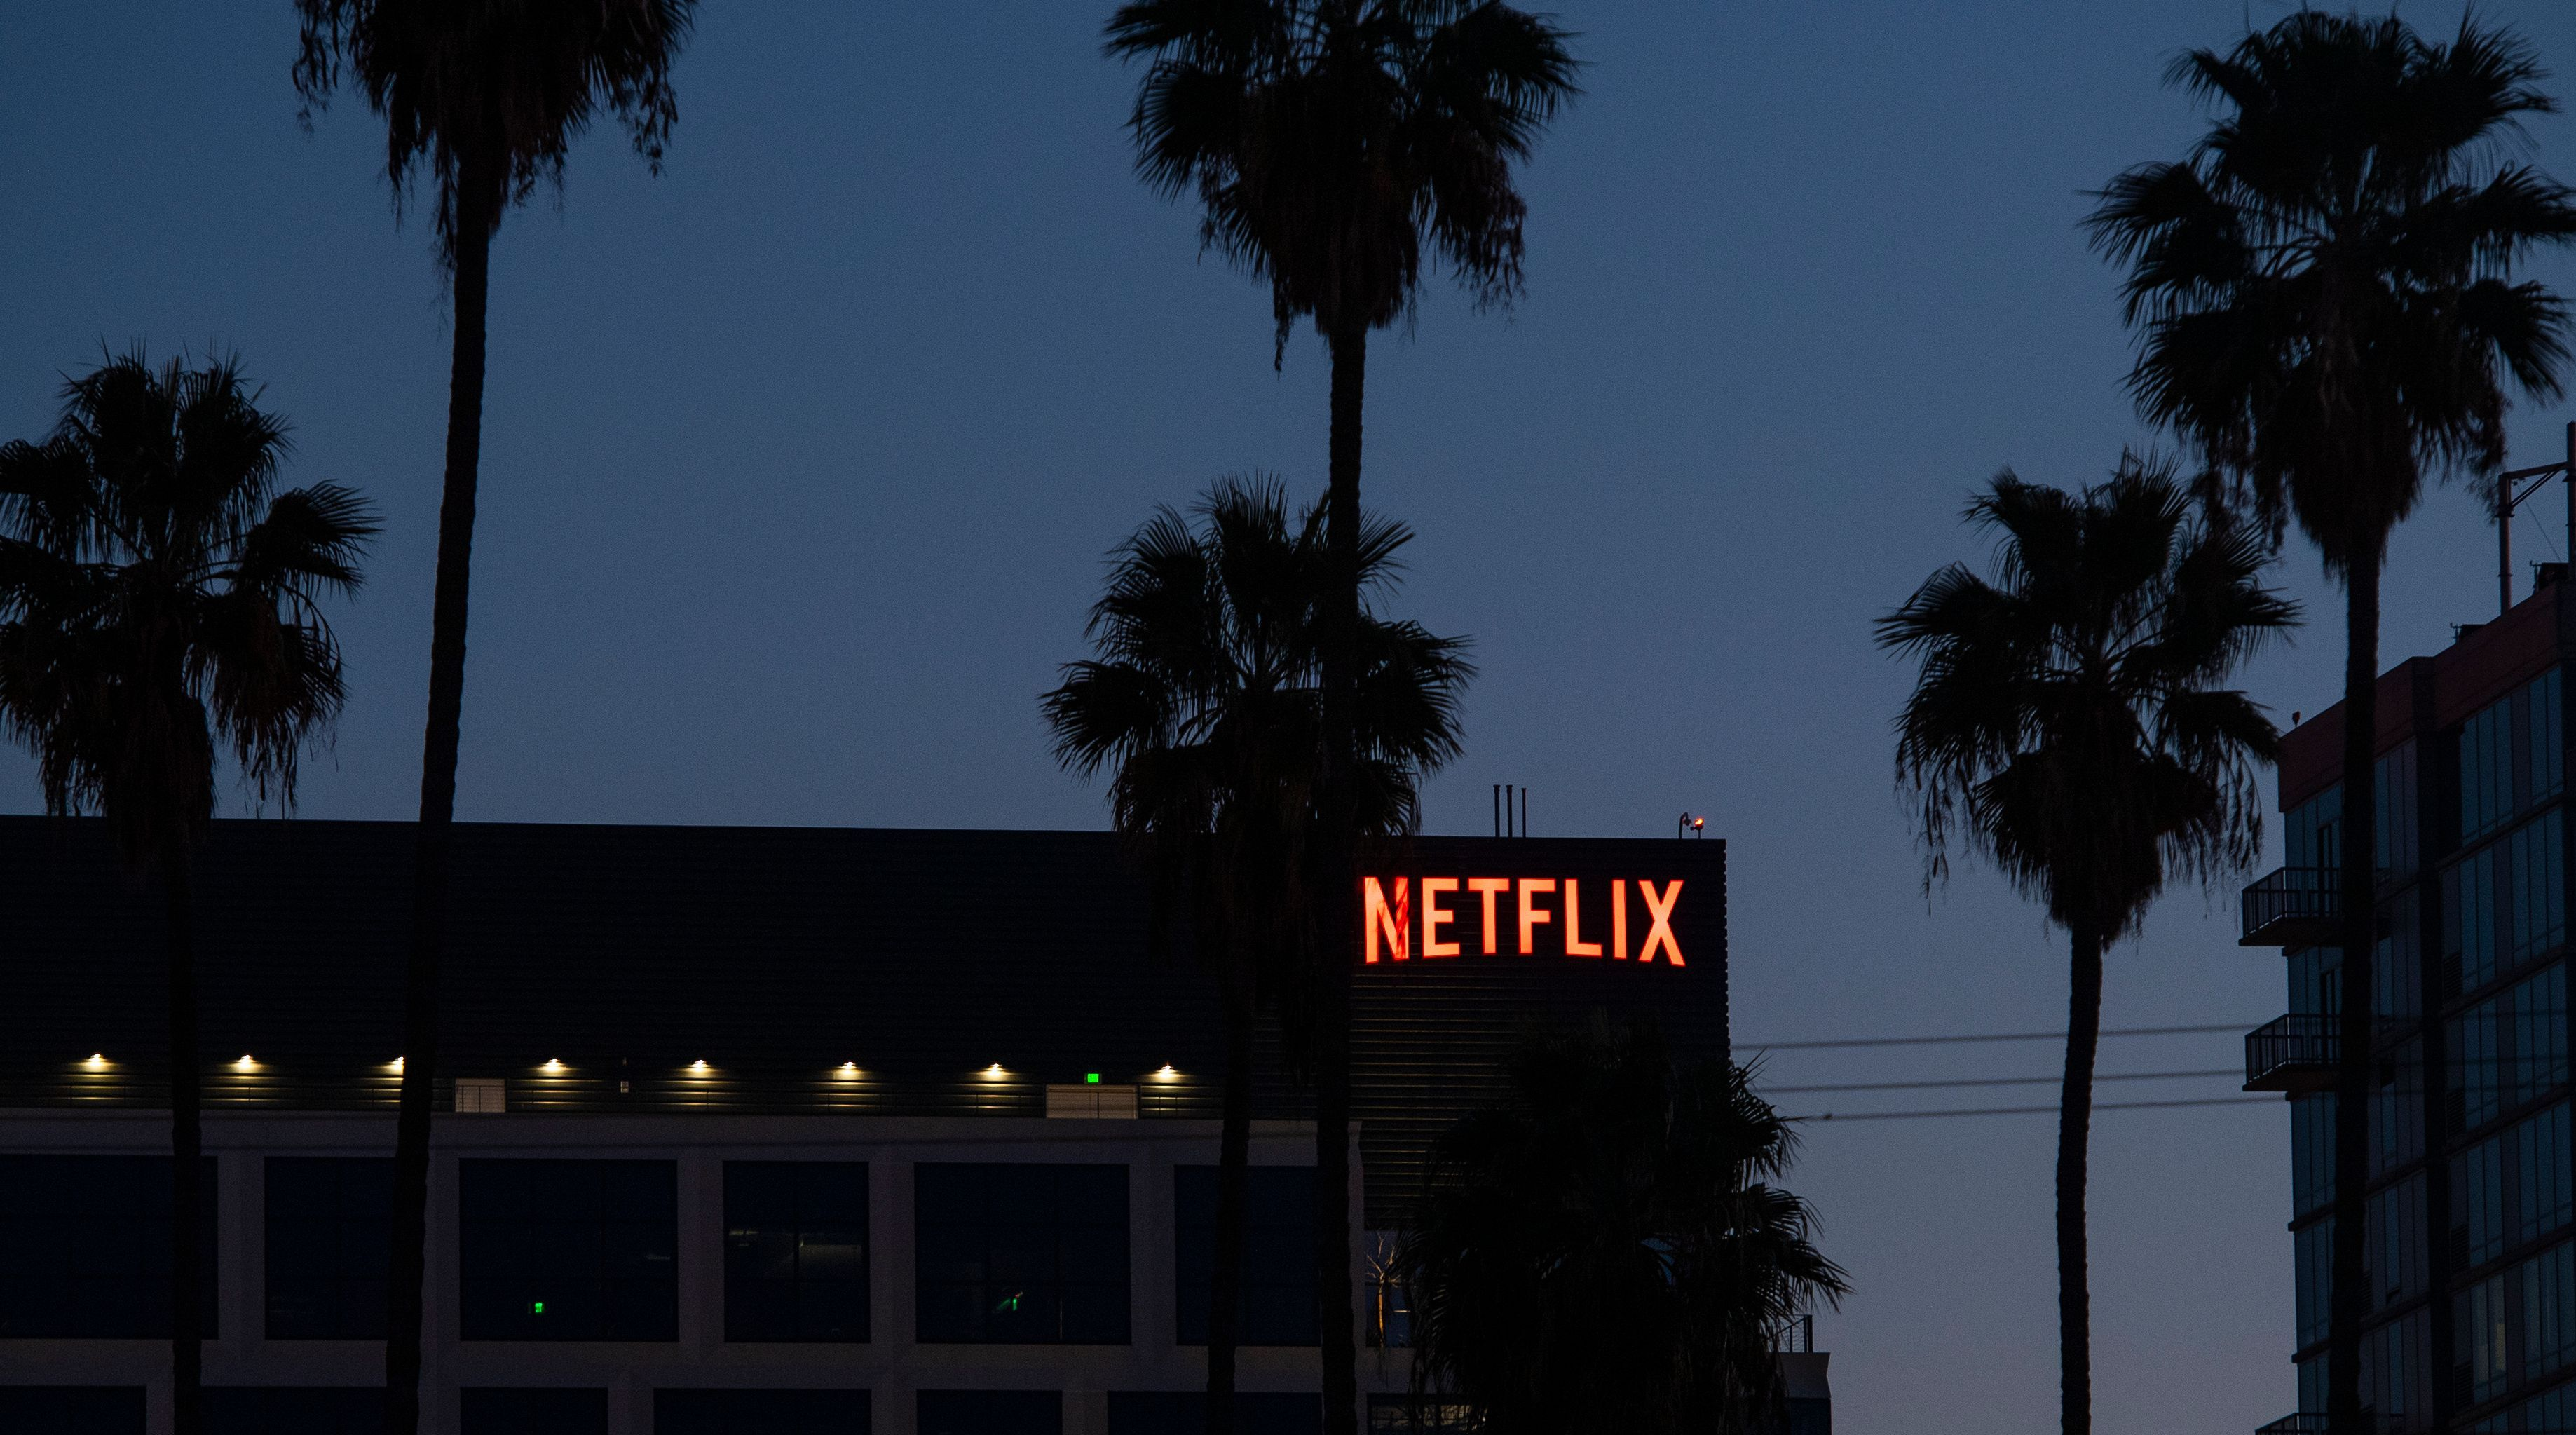 Some Netflix Employees Stage a Hollywood Walkout Over Dave Chappelle Special